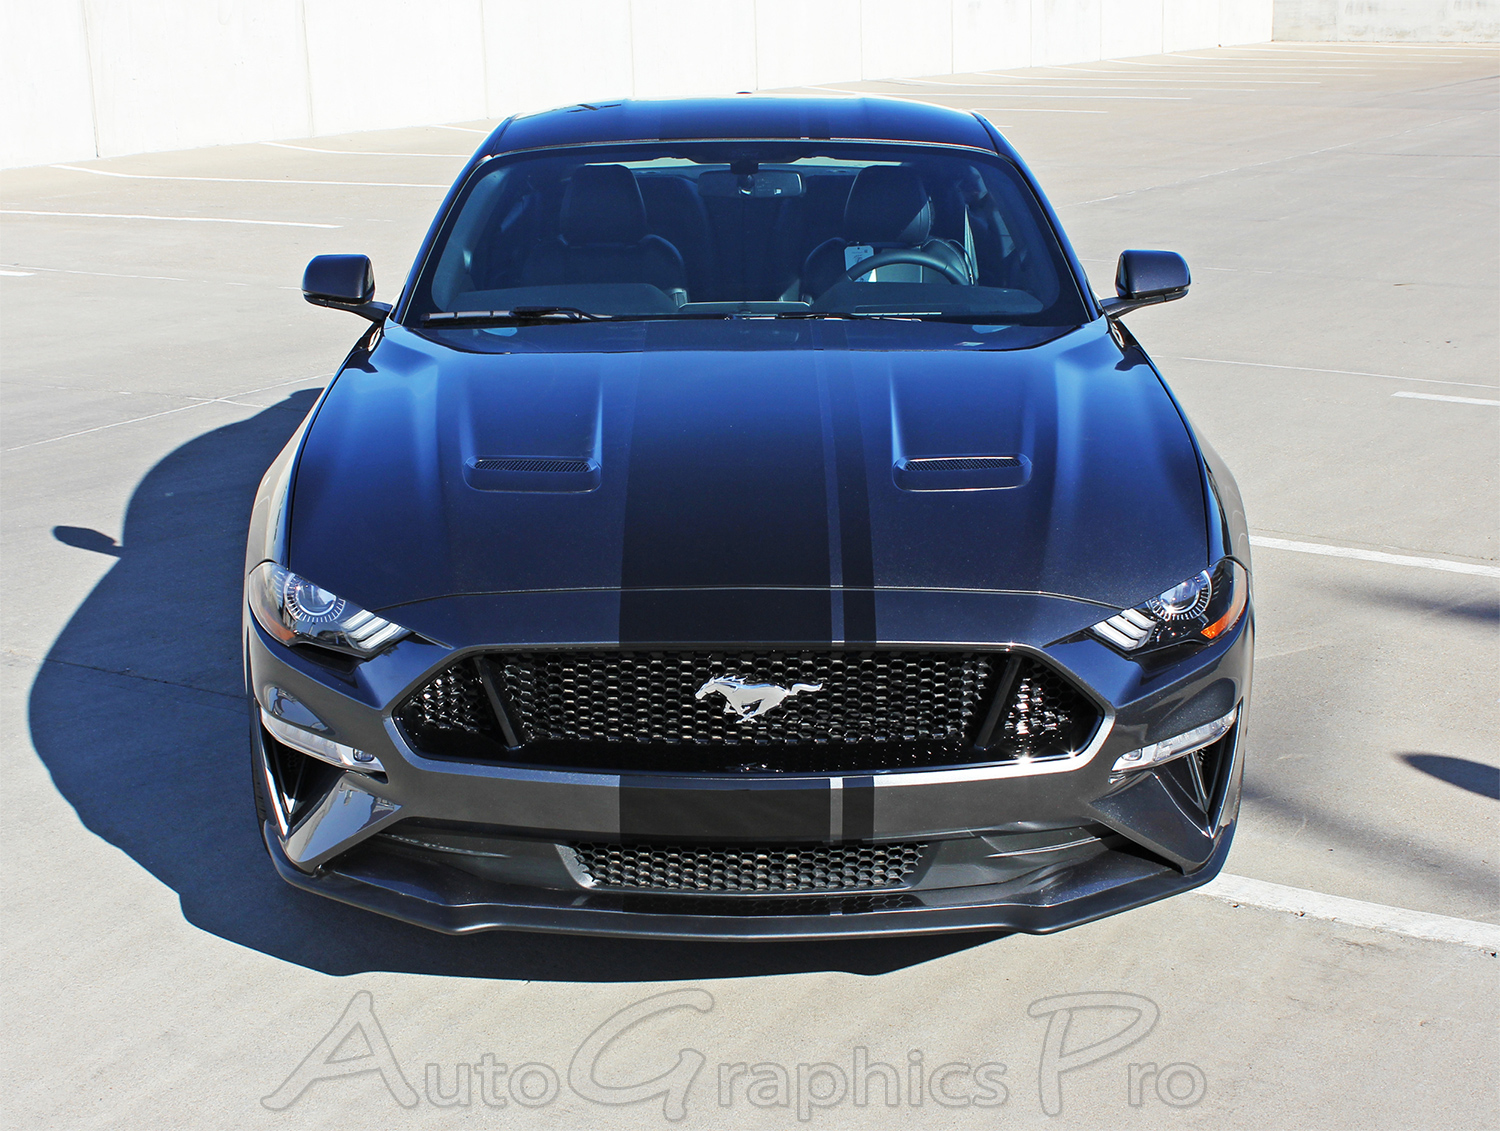 2018 2019 Ford Mustang Racing Stripes EURO XL RALLY Vinyl Graphics Wide Hood Decals